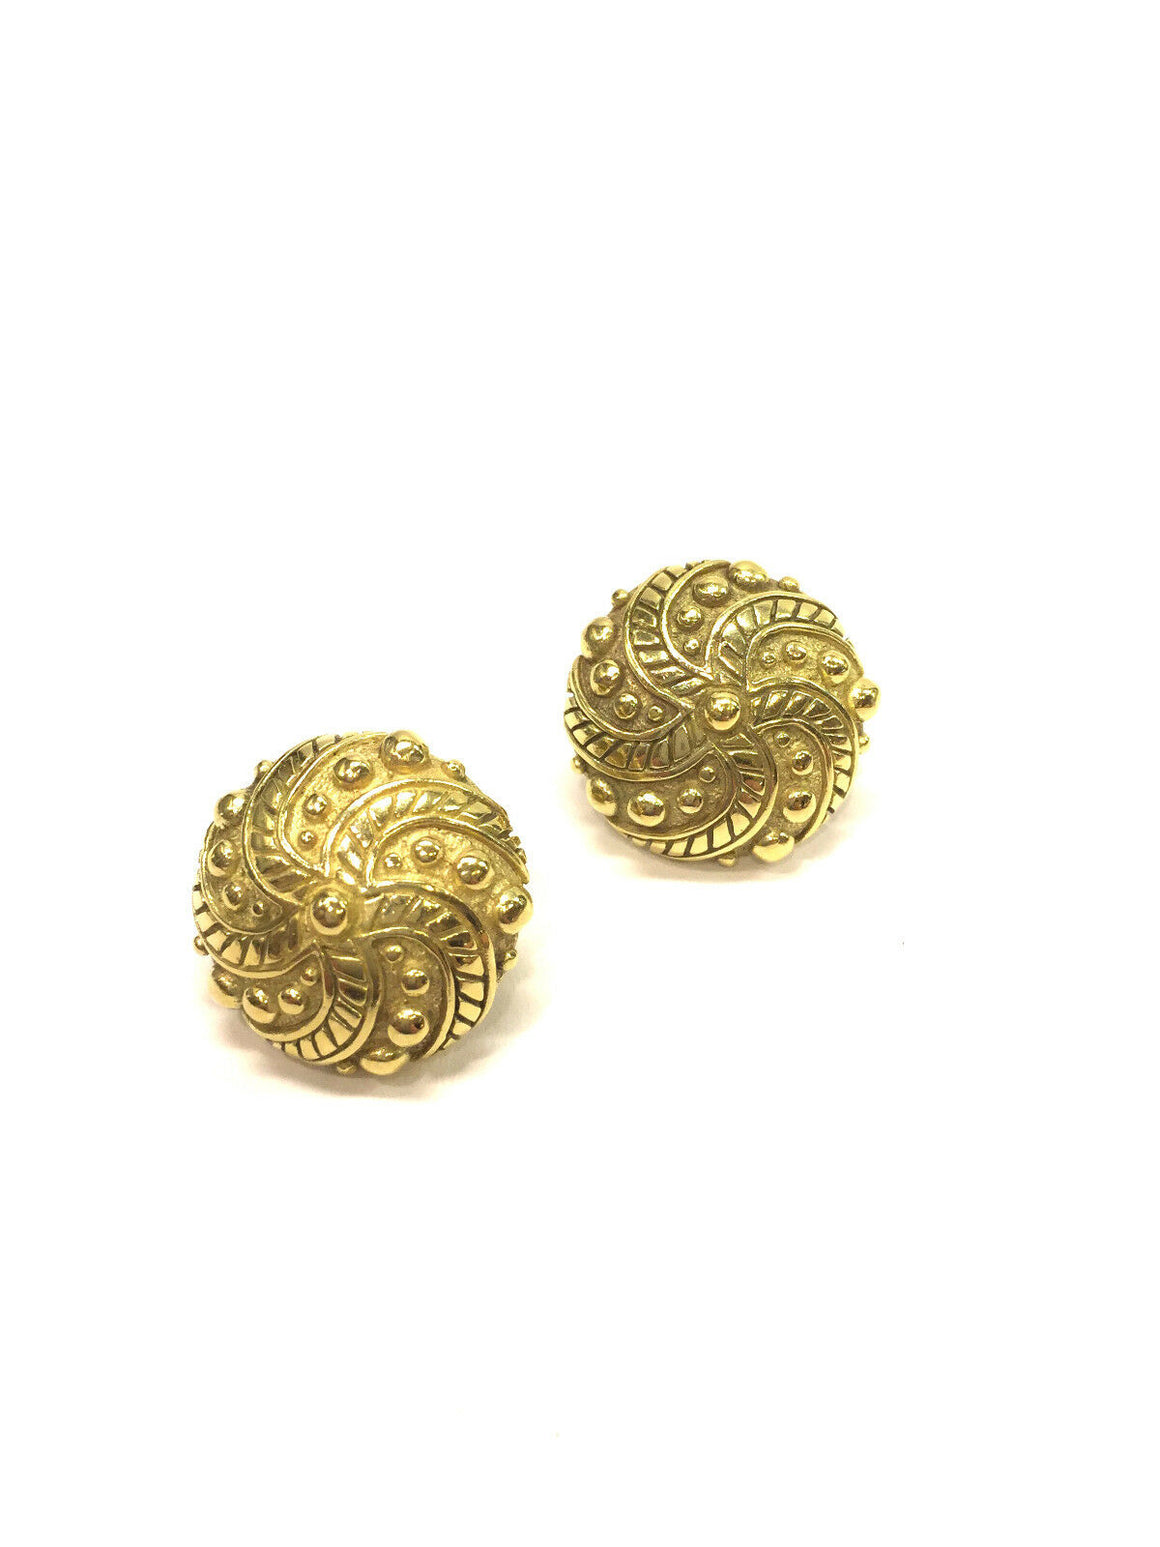 J. J. MARCO 18K Yellow Gold PINWHEEL Button Post/Clip-on Earrings